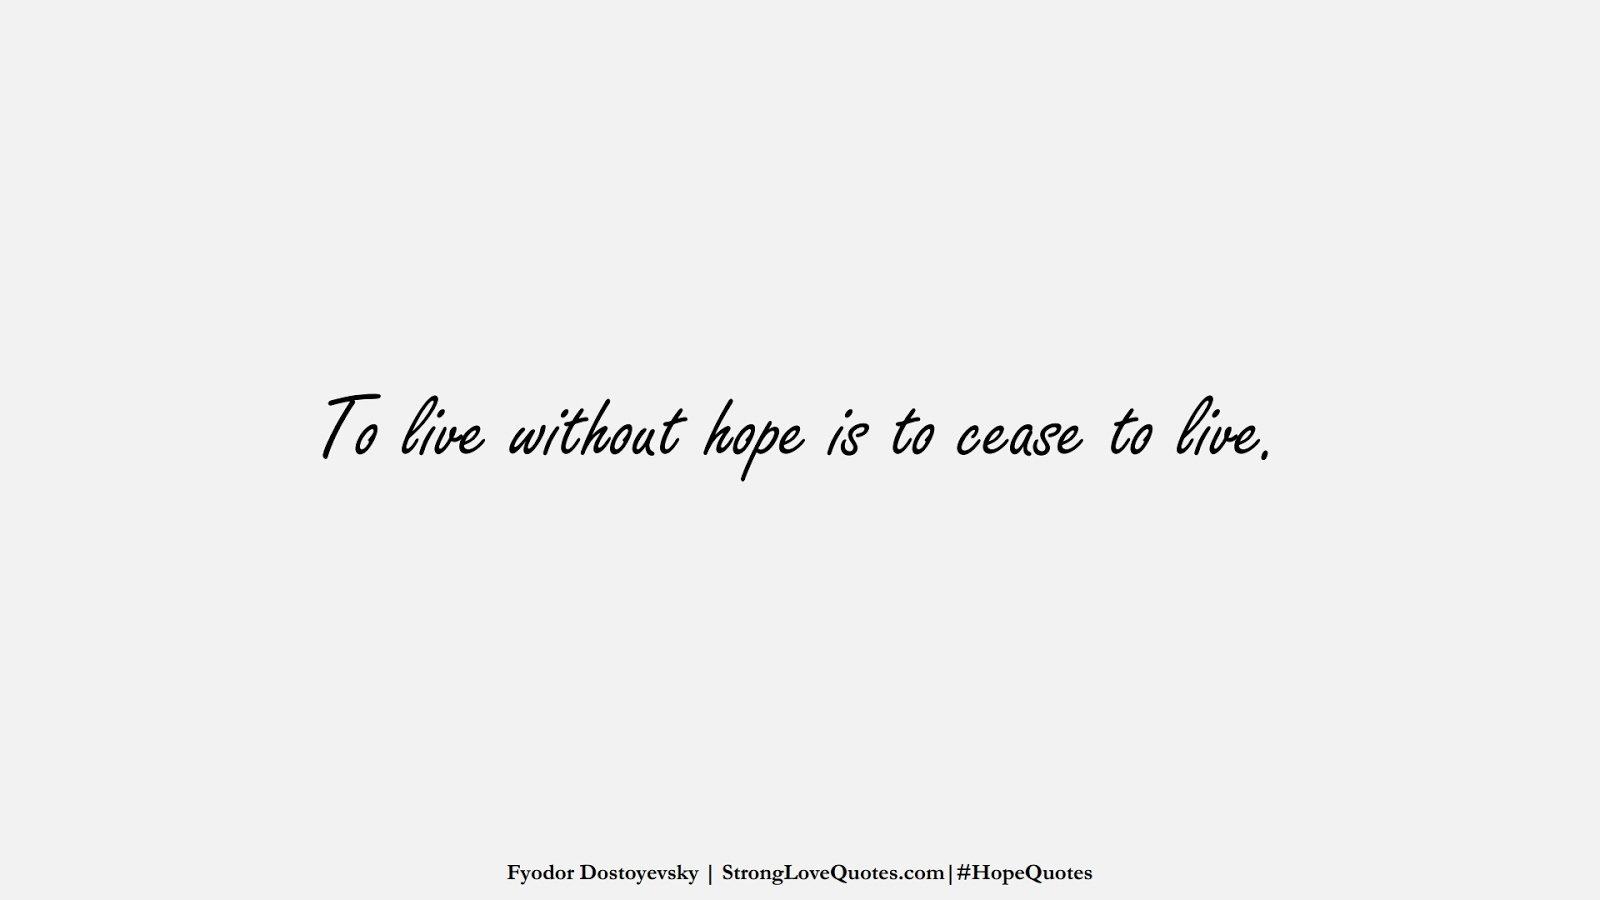 To live without hope is to cease to live. (Fyodor Dostoyevsky);  #HopeQuotes